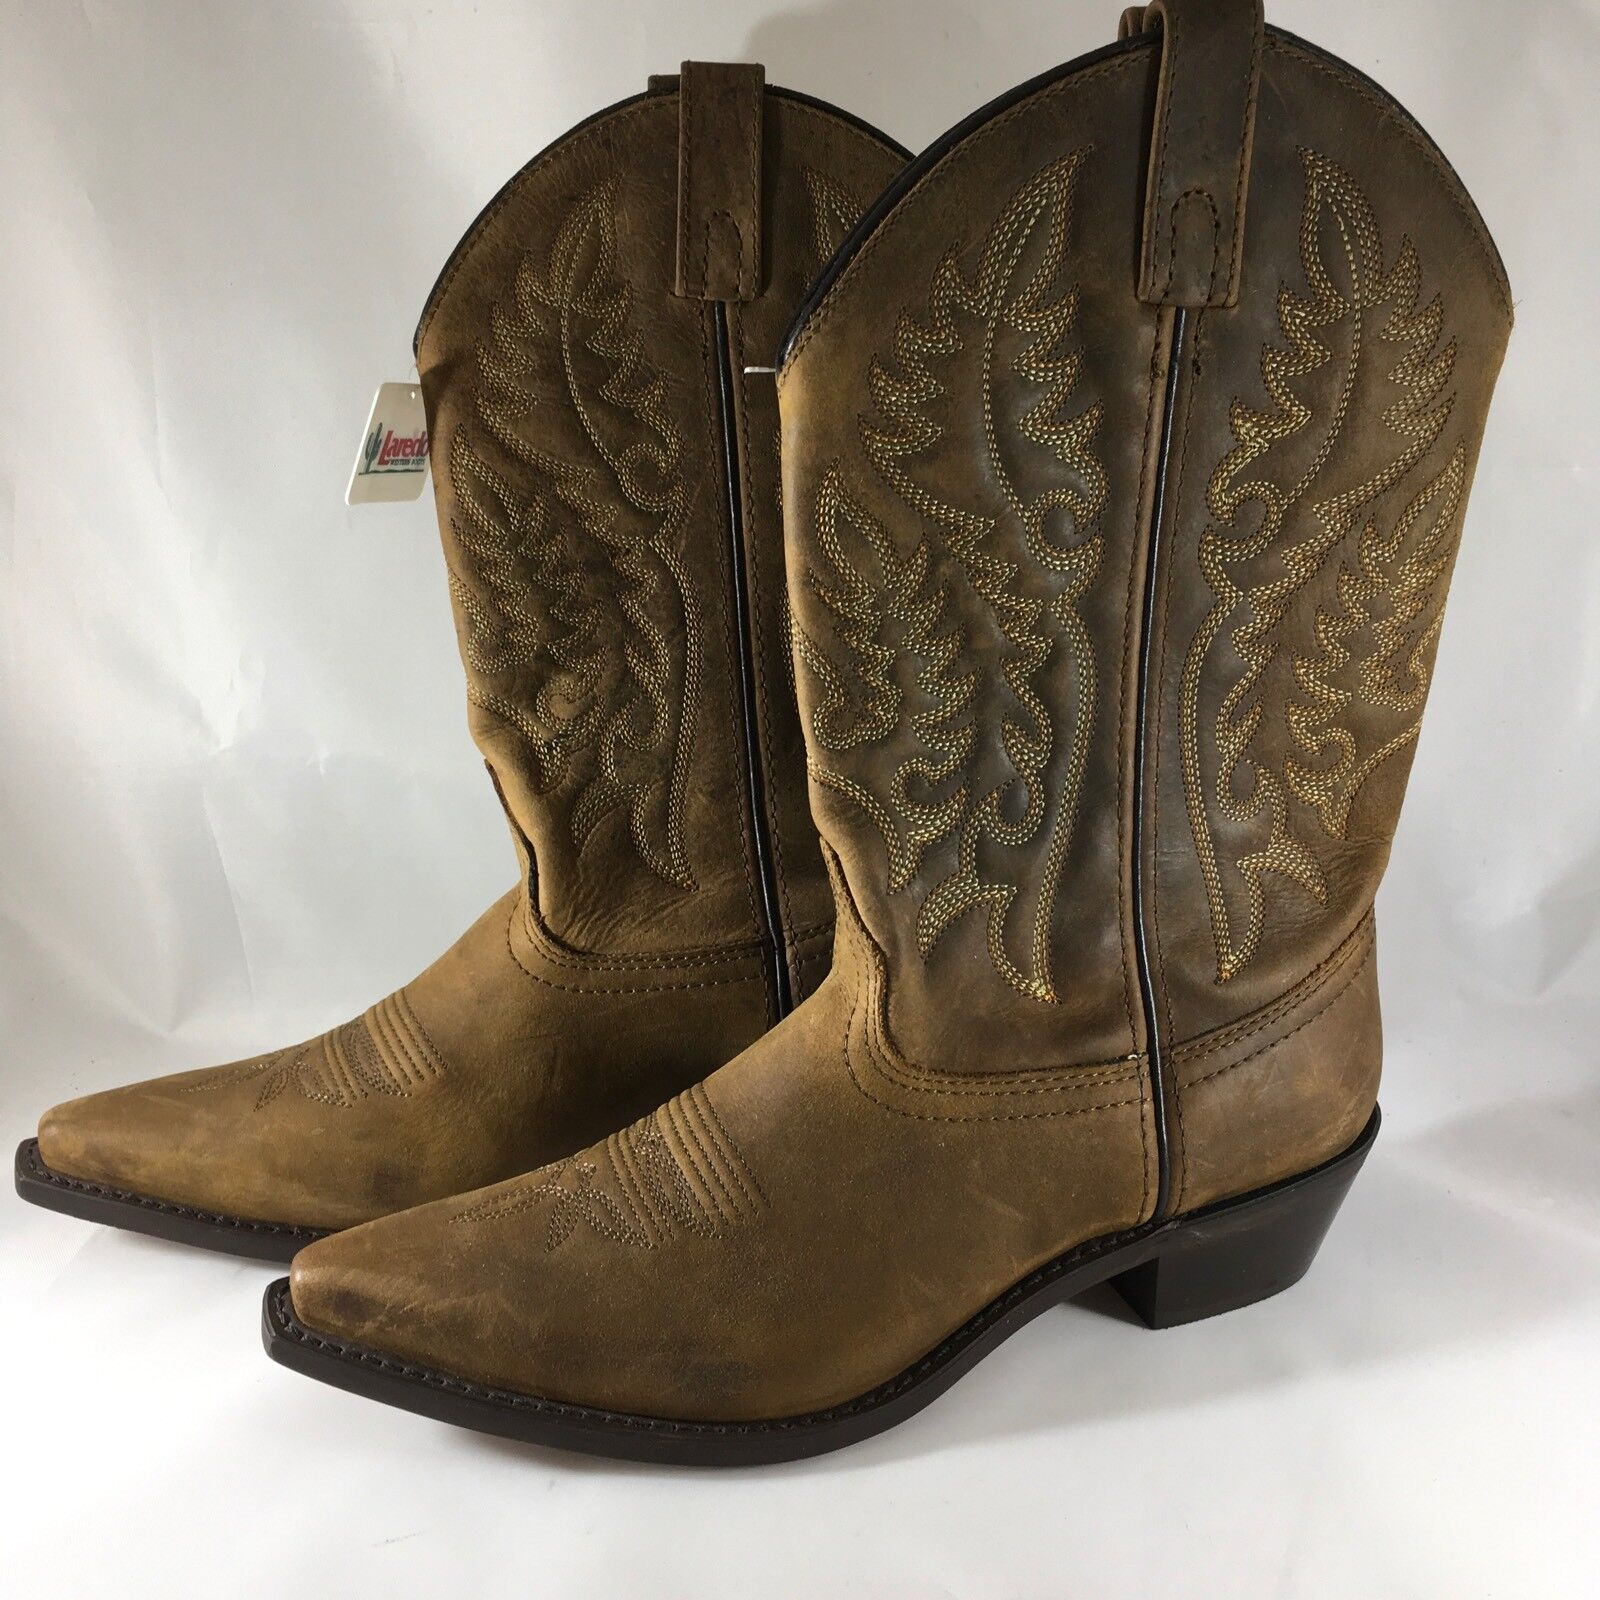 Laredo Women's Providence Crazy Horse Brown Leather Cowboy Boots 7M